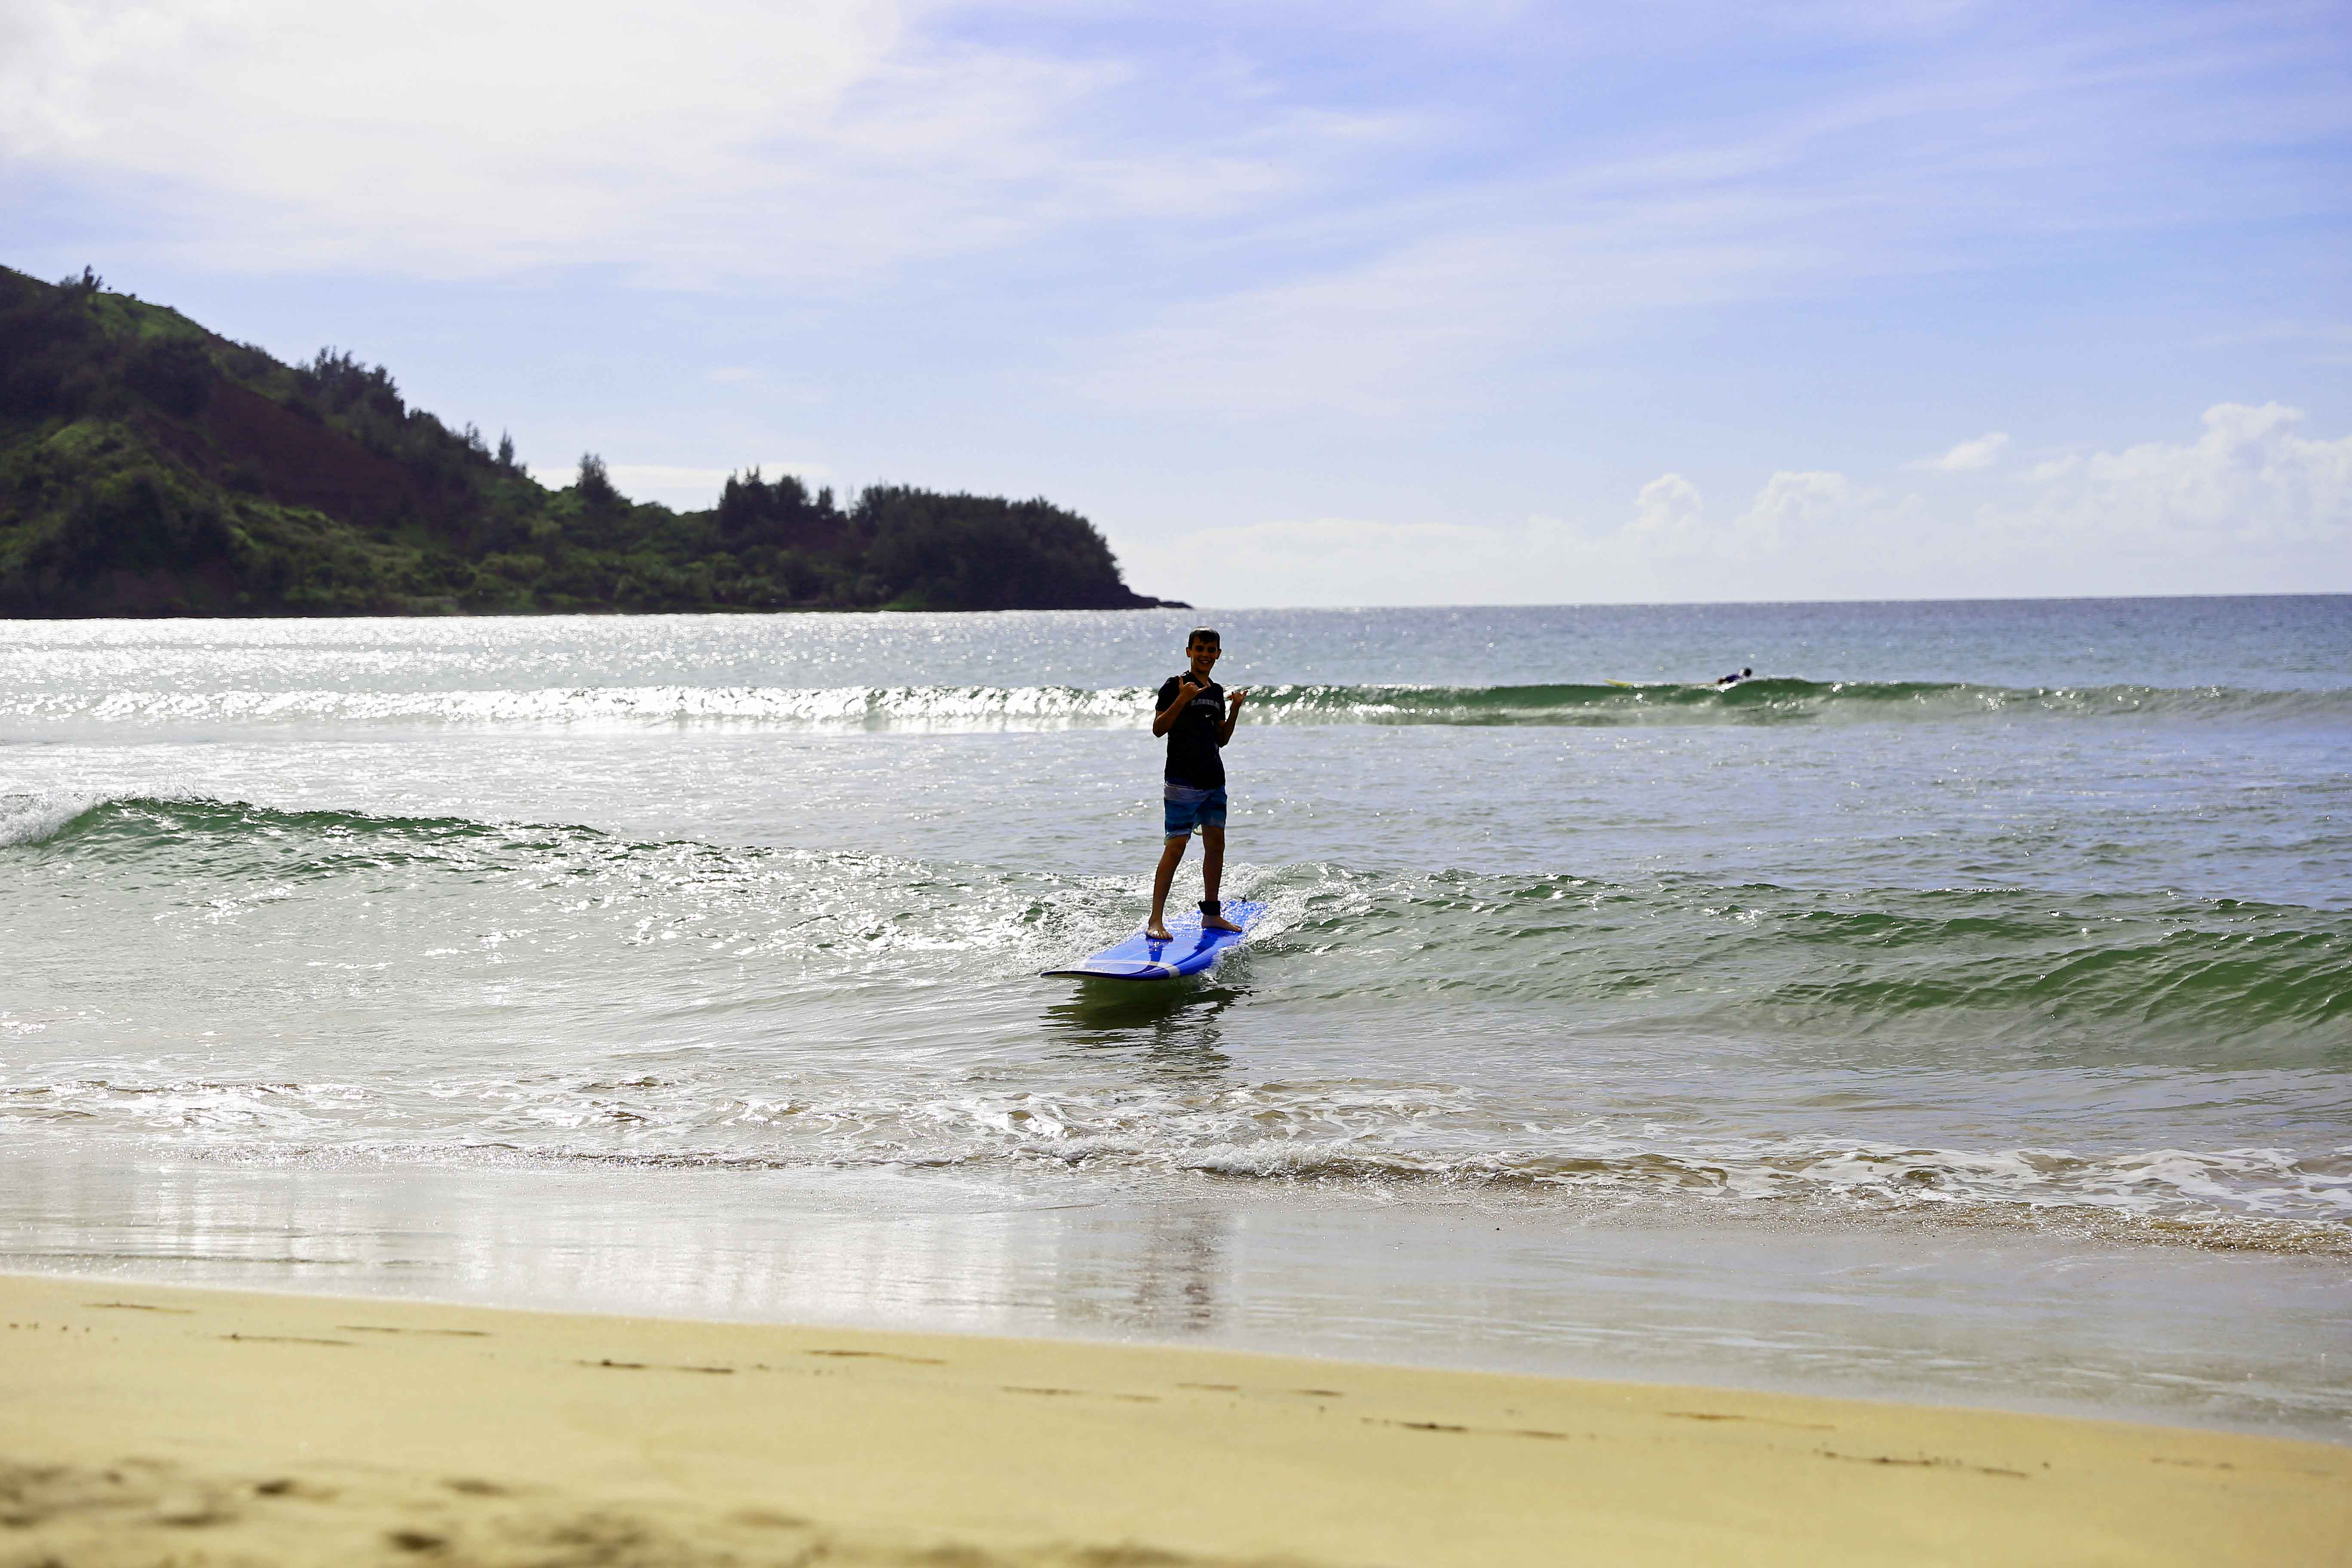 Surfing at Hanalei Bay